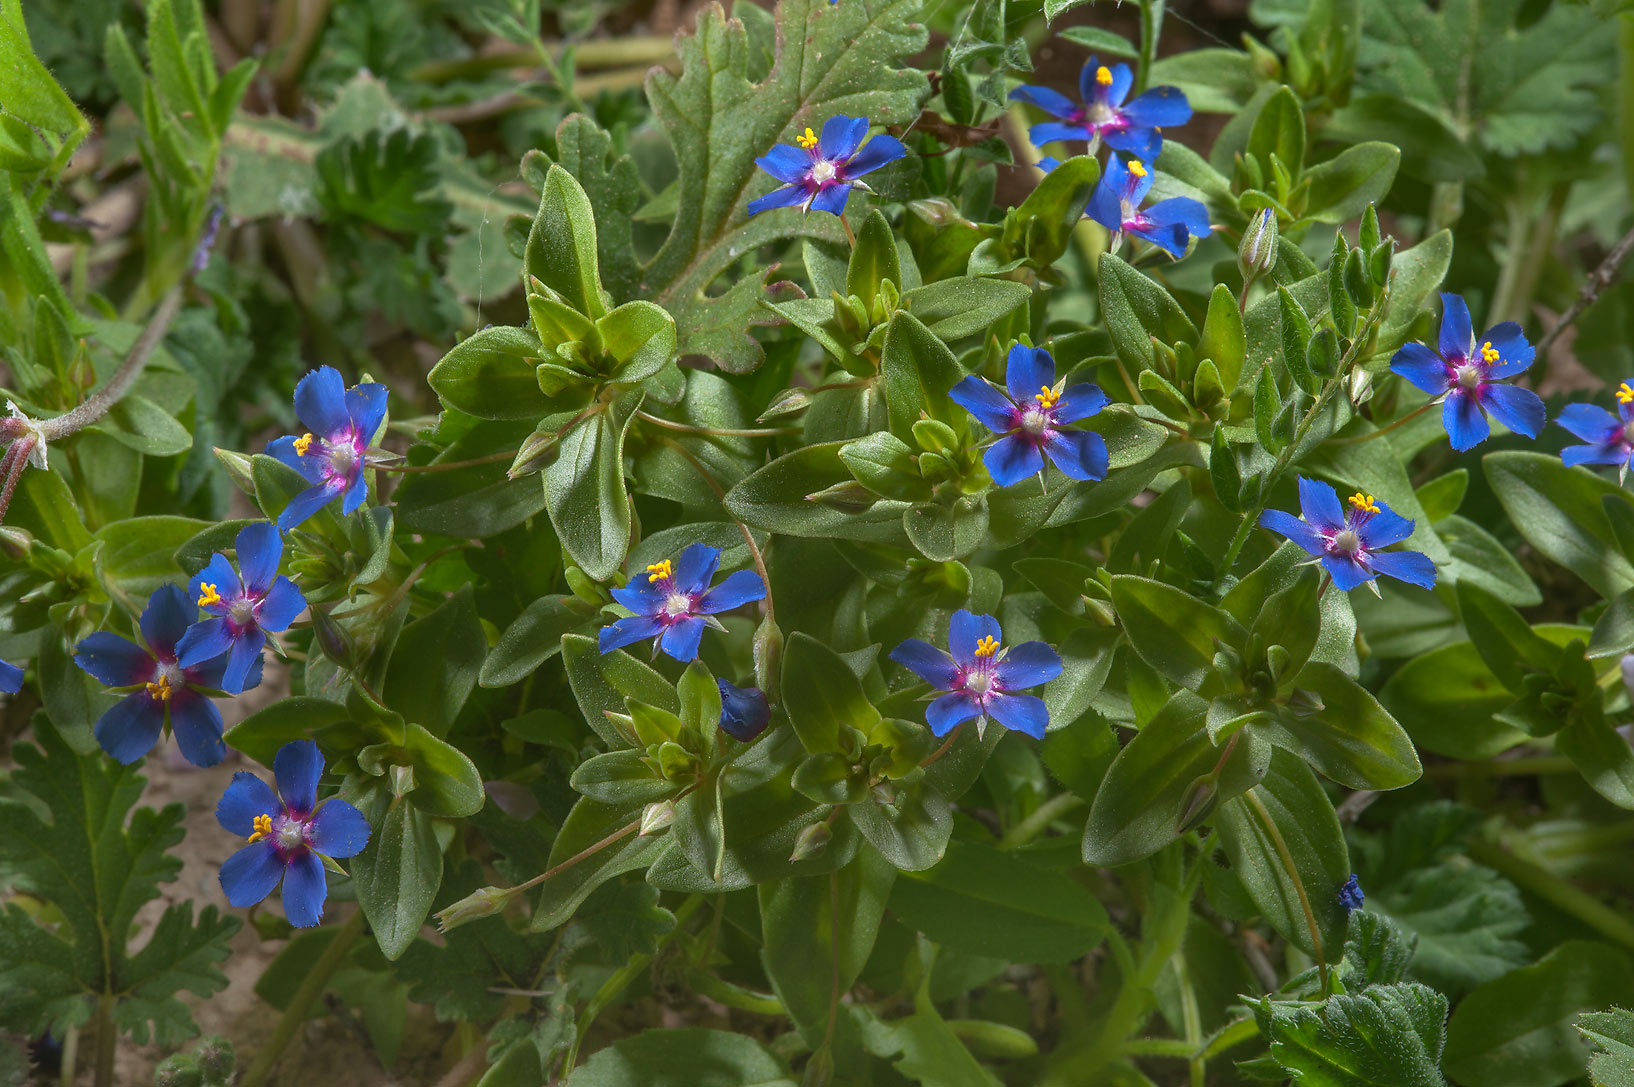 Scarlet pimpernel (Anagallis arvensis var...Farms, on north-eastern coast. Qatar